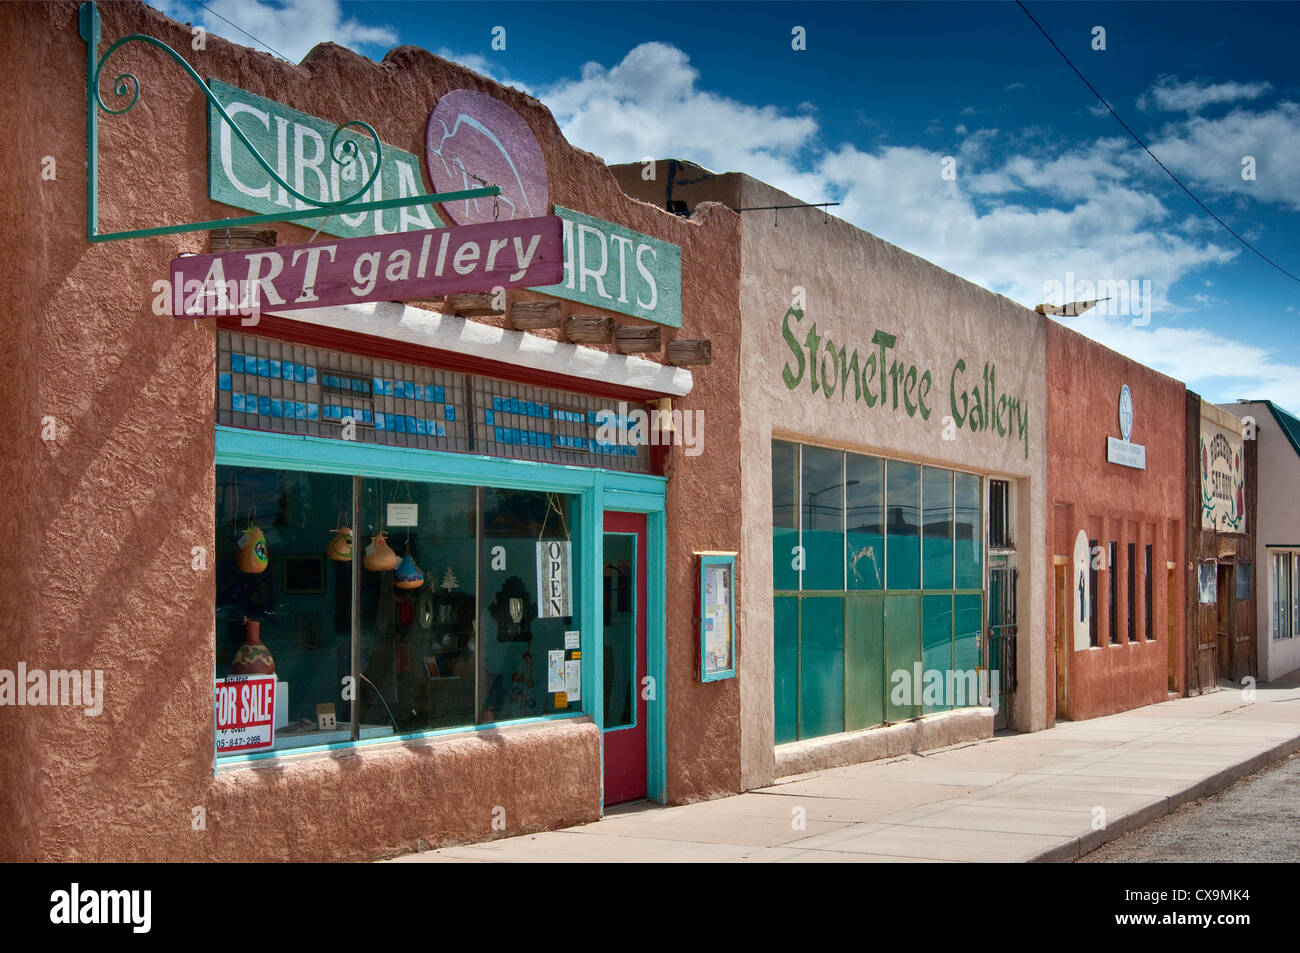 Art galleries on West Broadway in Mountainair, New Mexico, USA - Stock Image